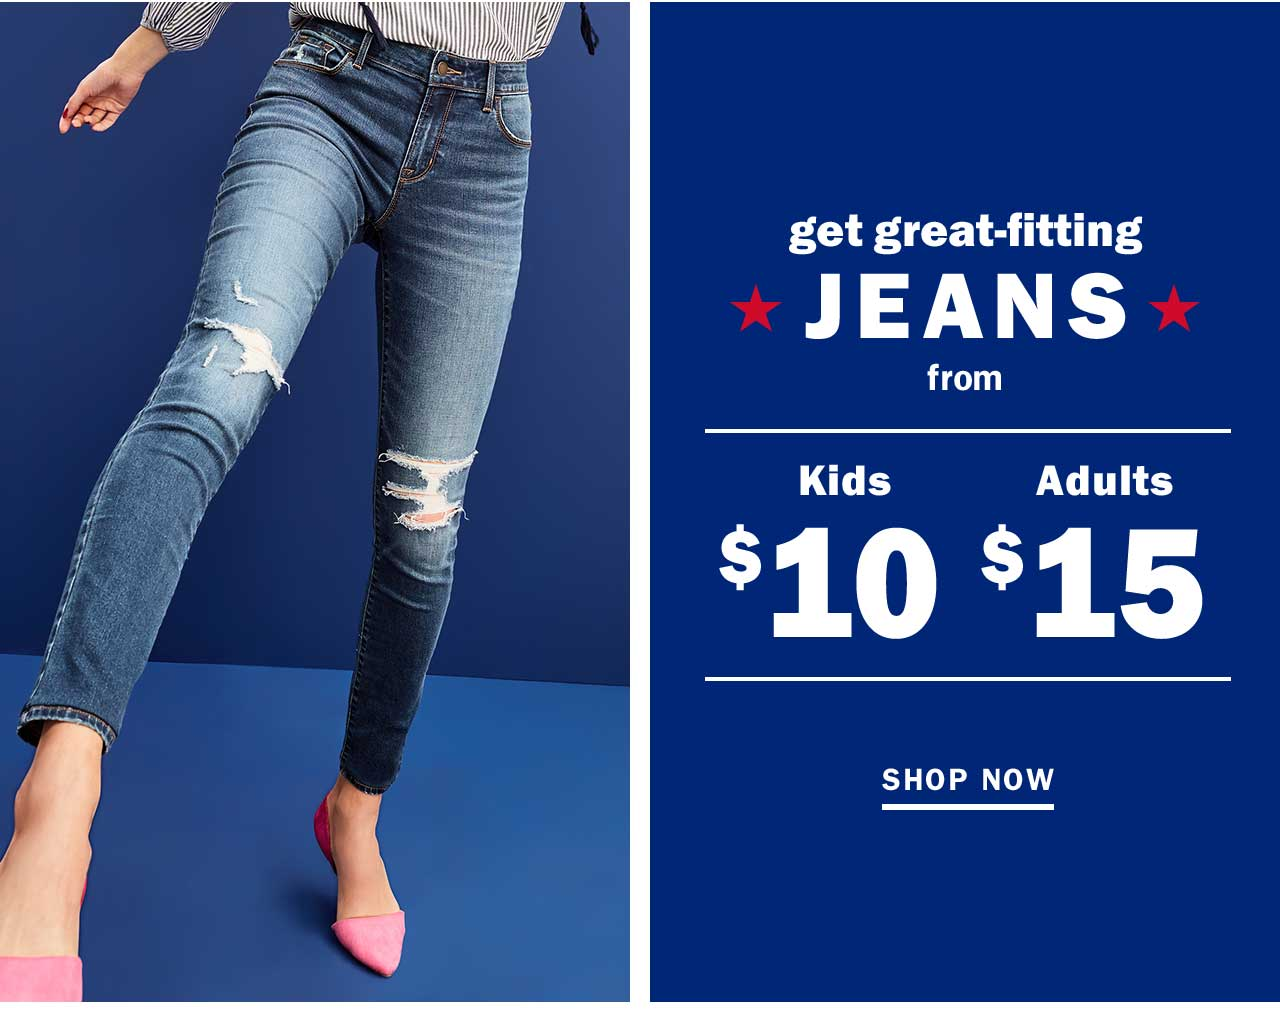 get great-fitting JEANS | SHOP NOW